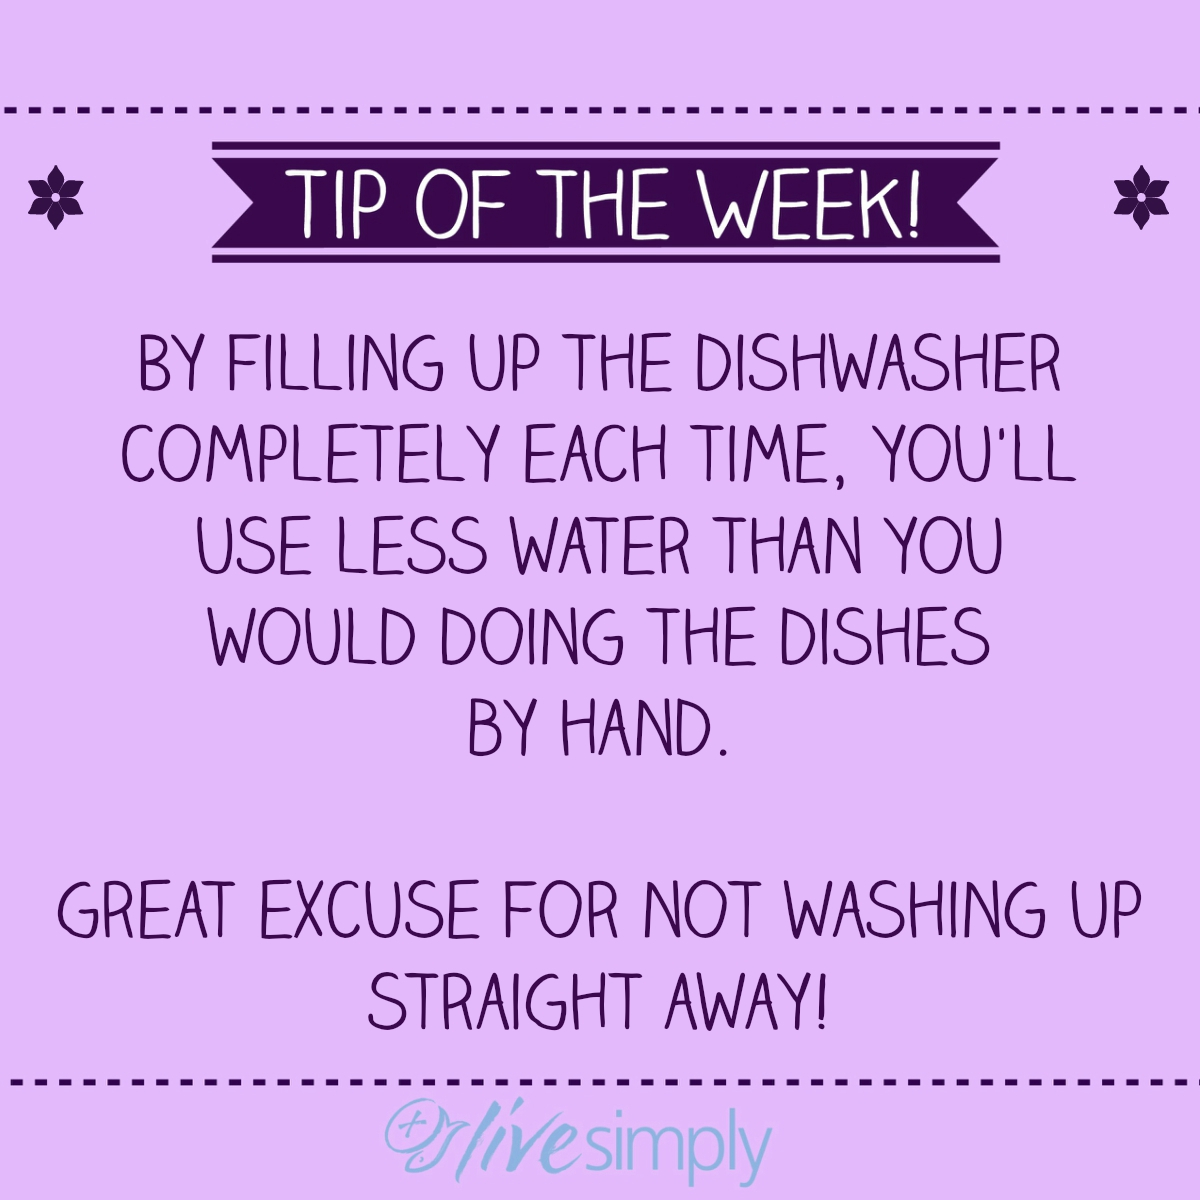 Another water saving tip for this week!  #SaveWater #EveryDropCounts #WashingUp #Redcar #Marske<br>http://pic.twitter.com/c1jkWmafz6